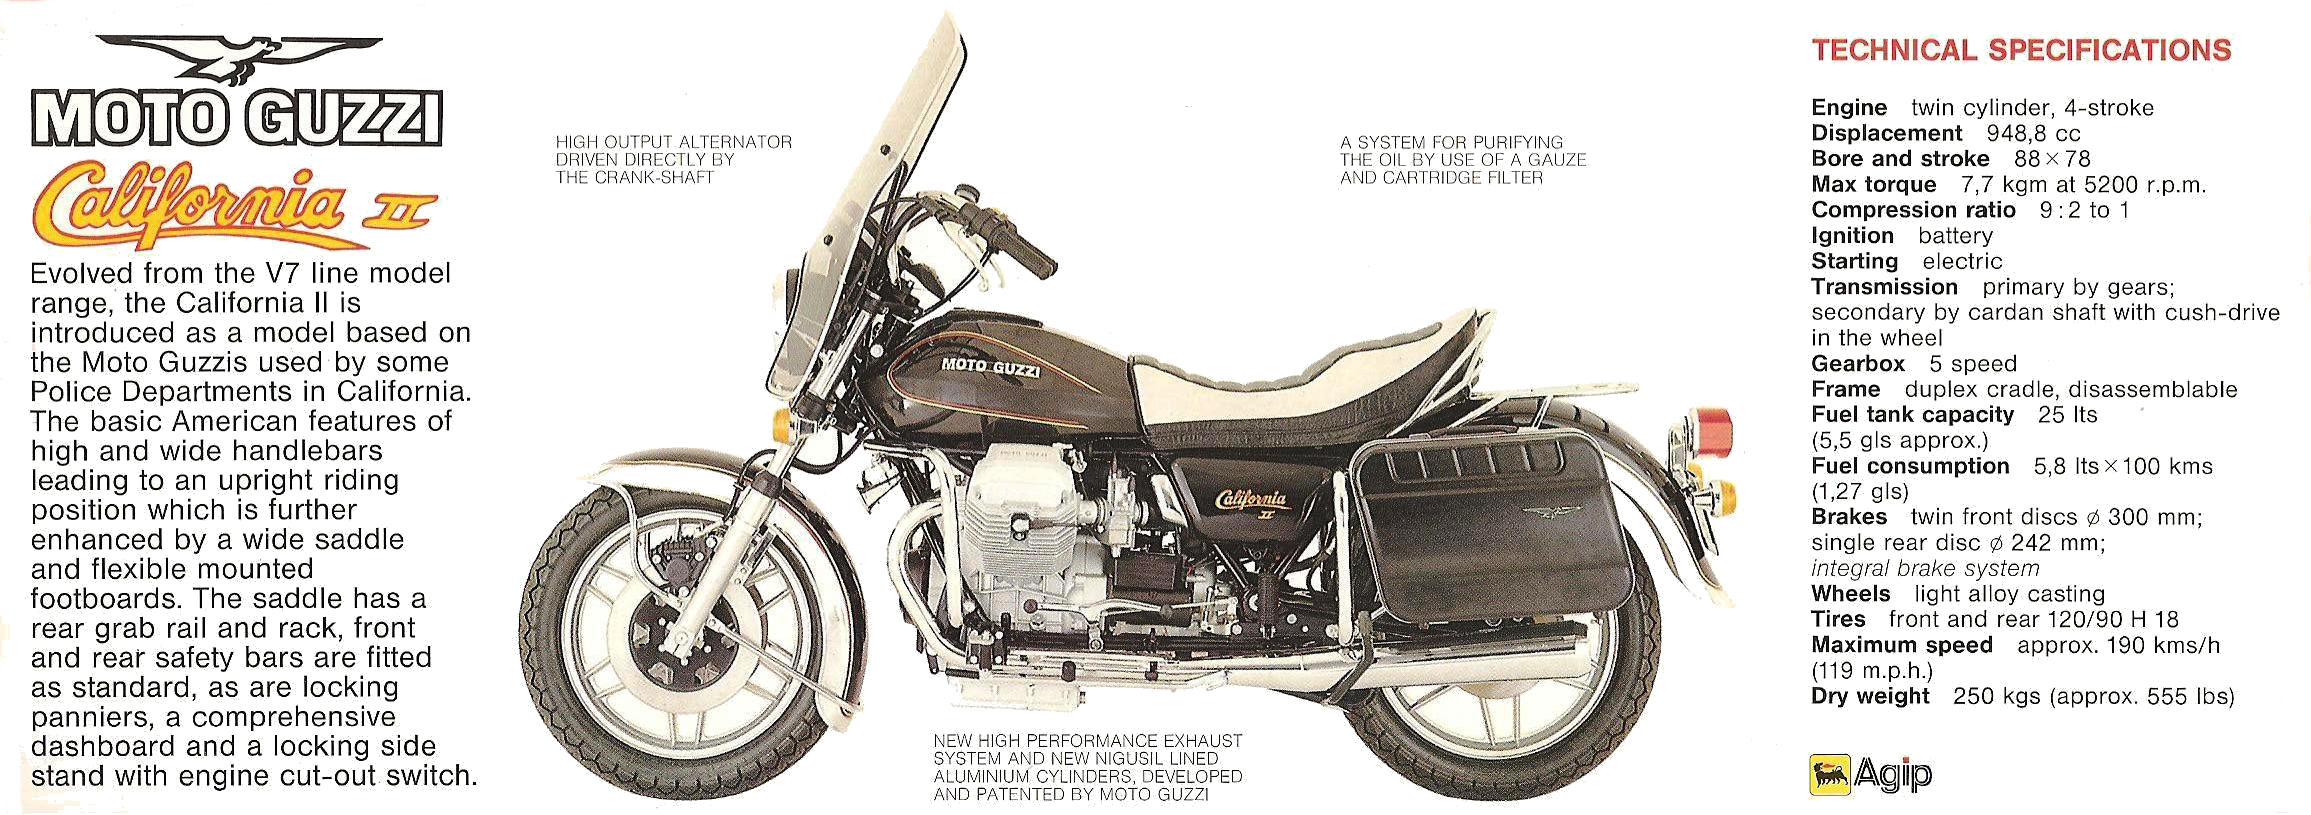 Moto Guzzi California II 1983 images #107469